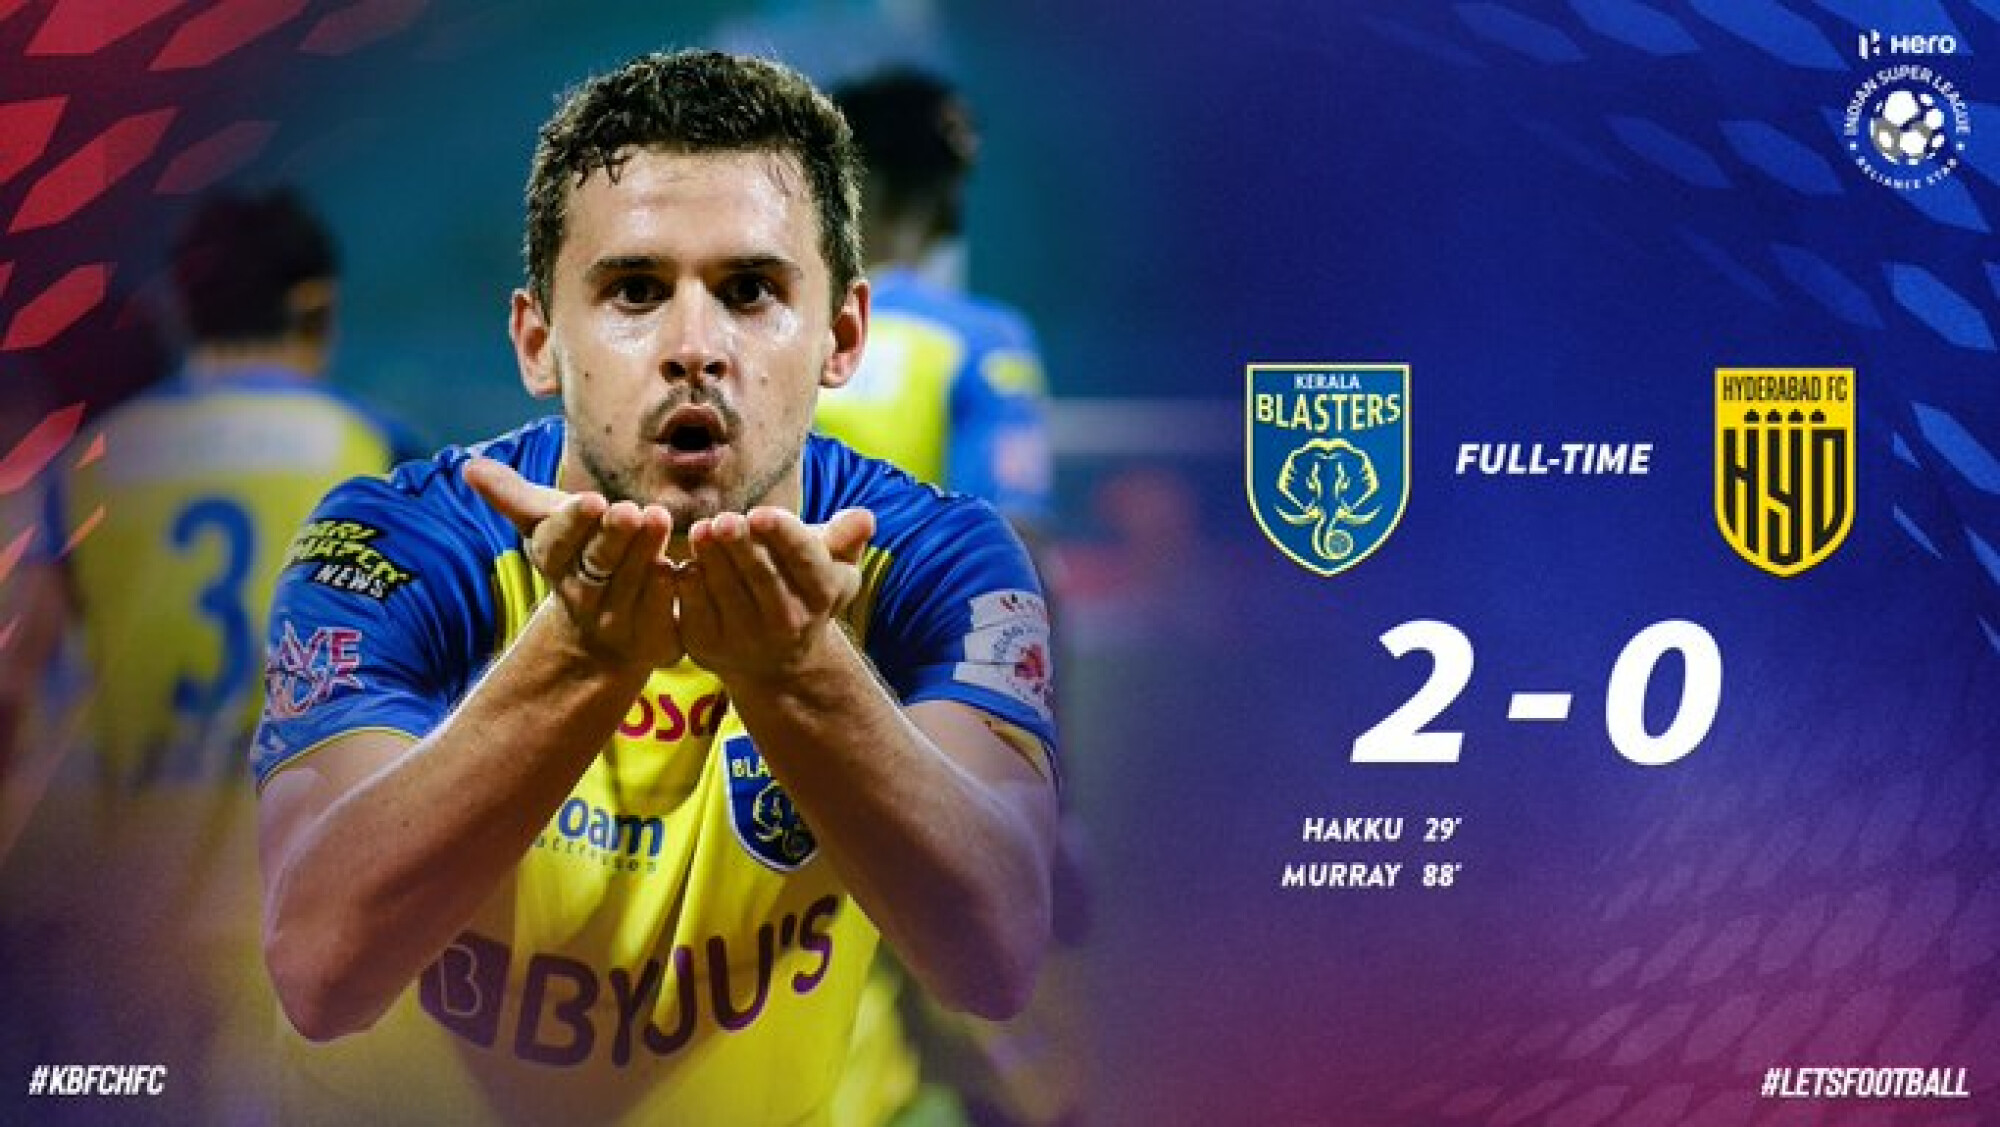 ISL: Hakku, Murray led Kerala Blasters to inspiring first win of the season defeating Hyderabad FC at home.